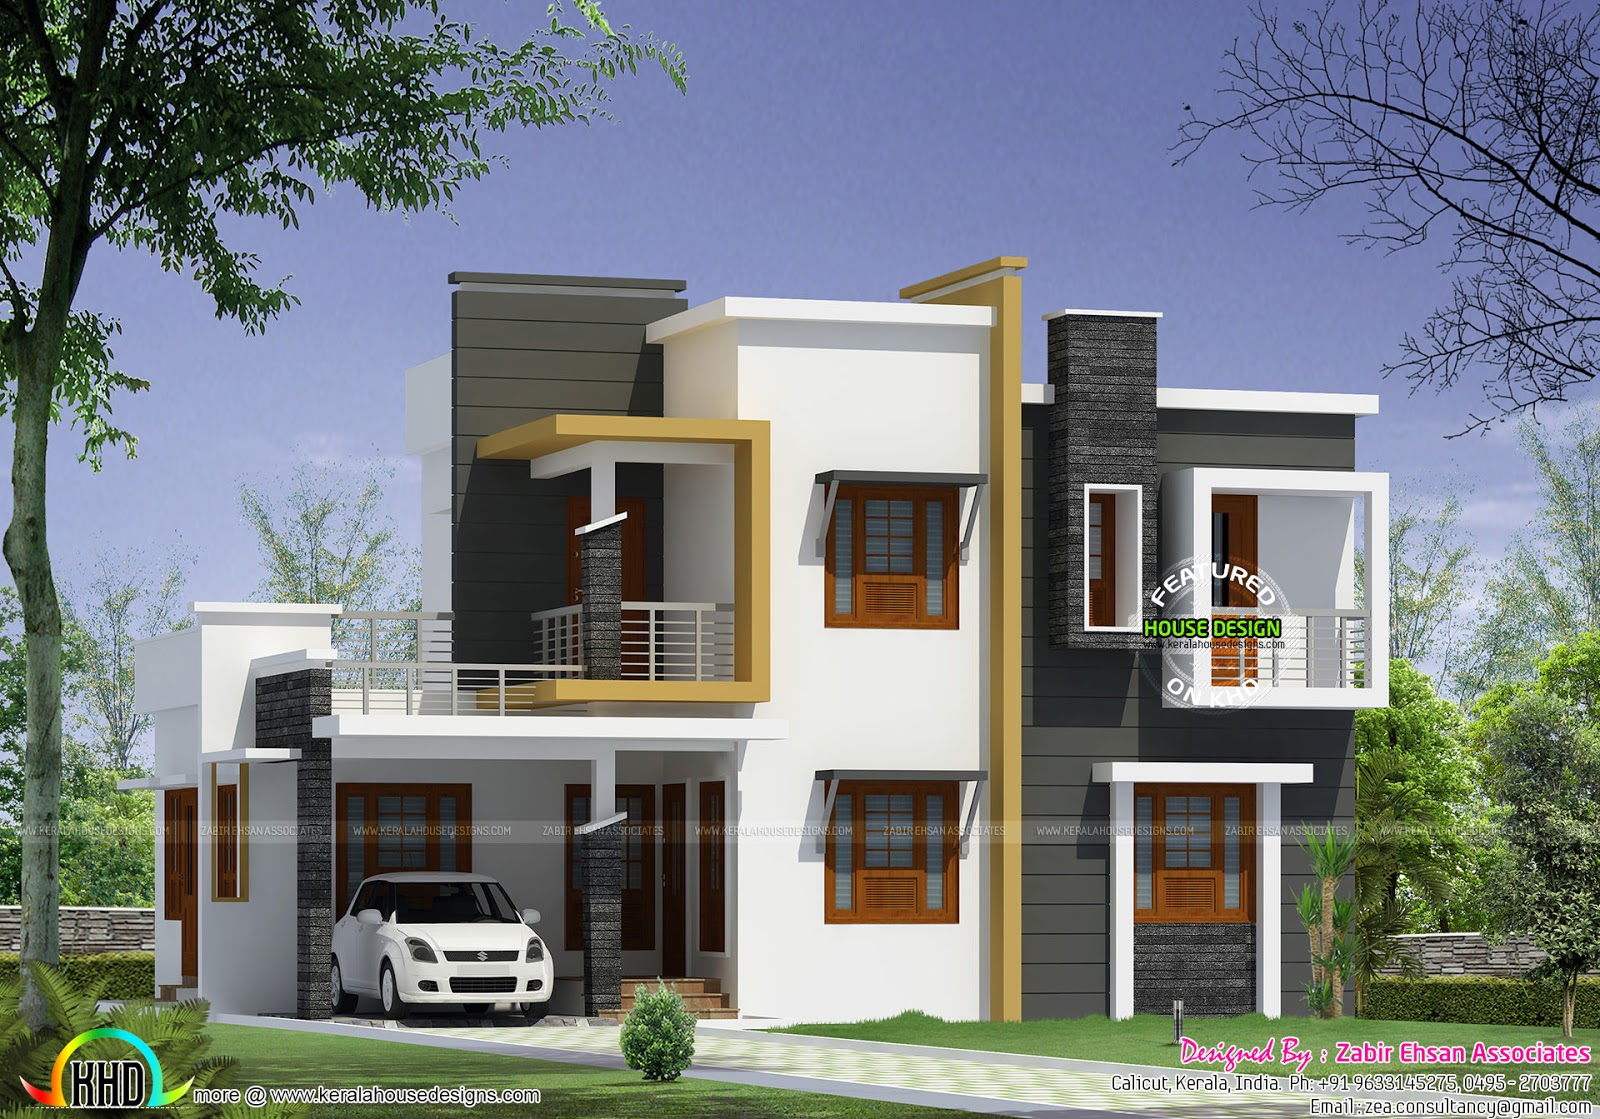 Box type modern house plan kerala home design and floor for Contemporary home floor plans designs